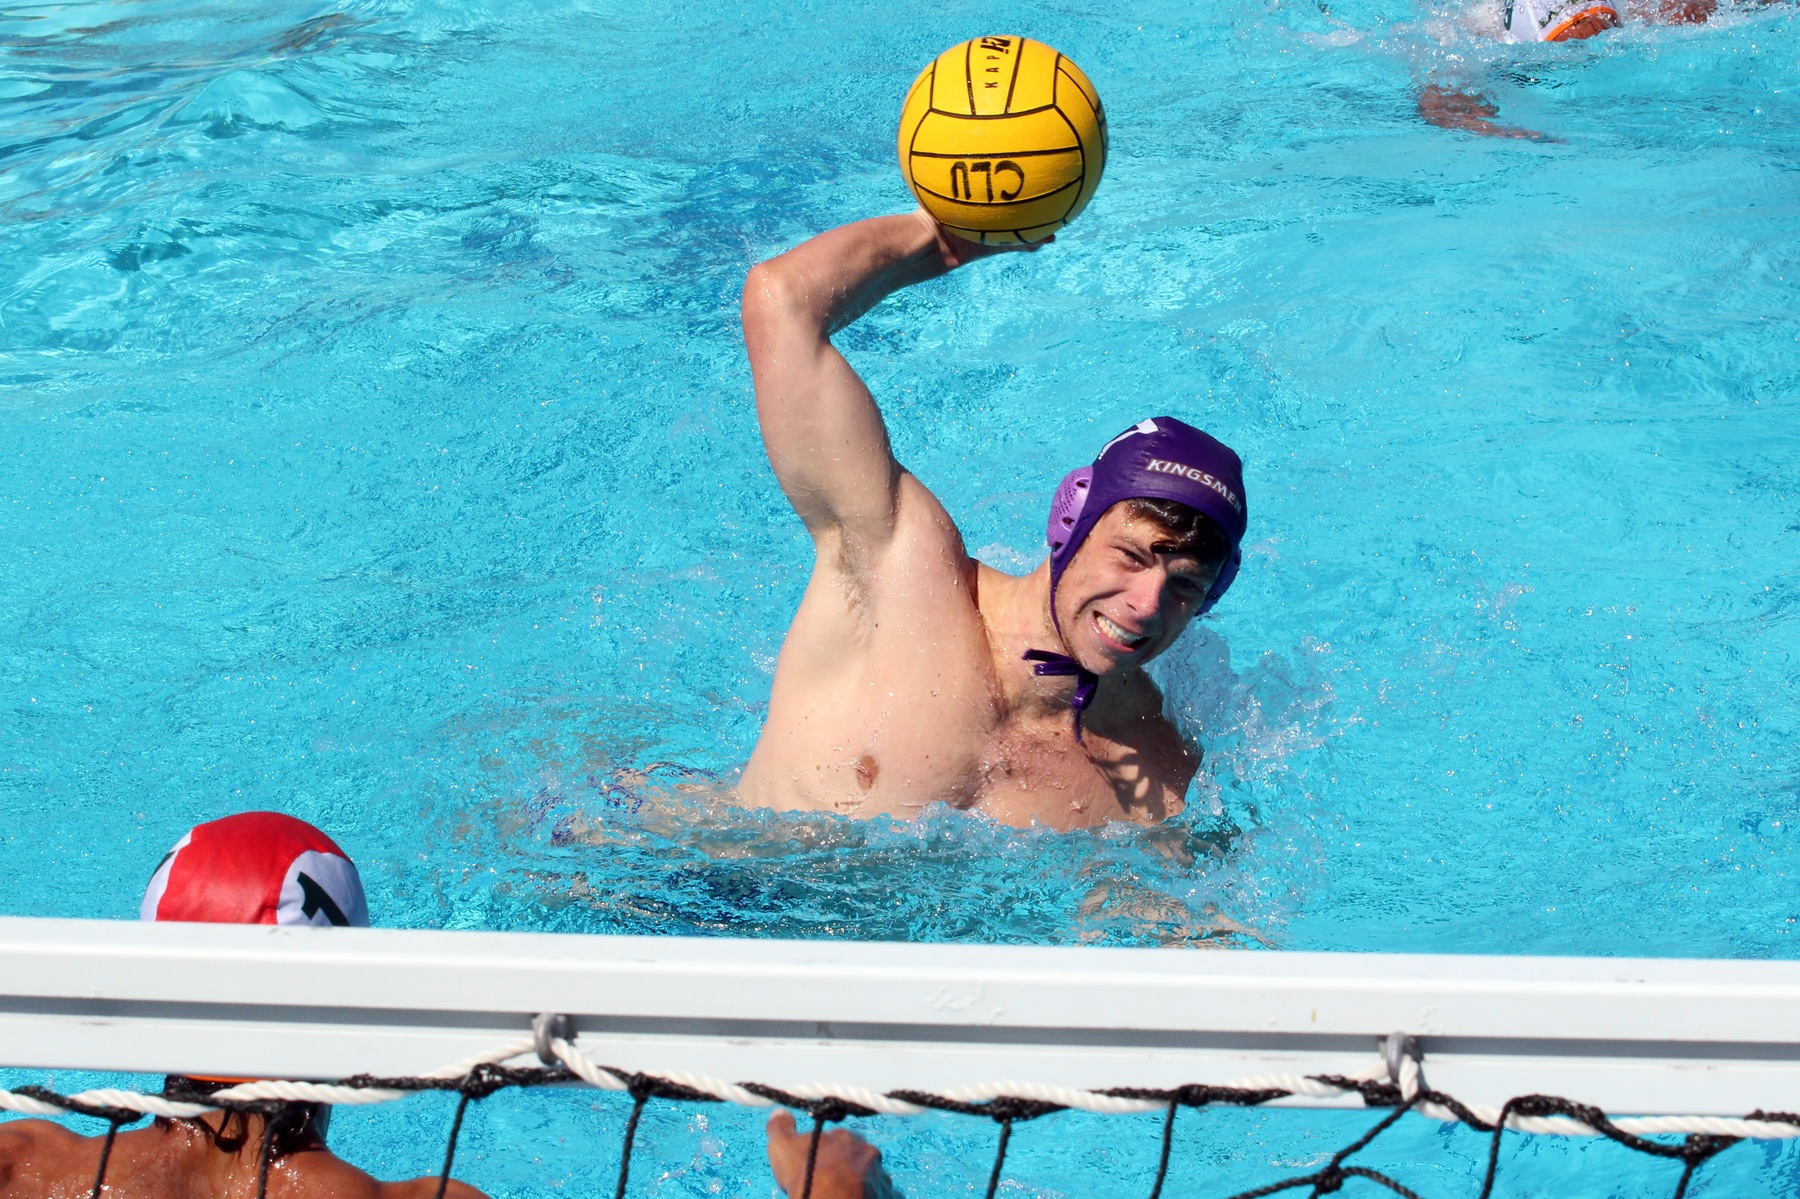 Thomas Randles scored his first collegiate goal in a 16-12 SCIAC win over La Verne today (Photo: Tracy L. Olson).